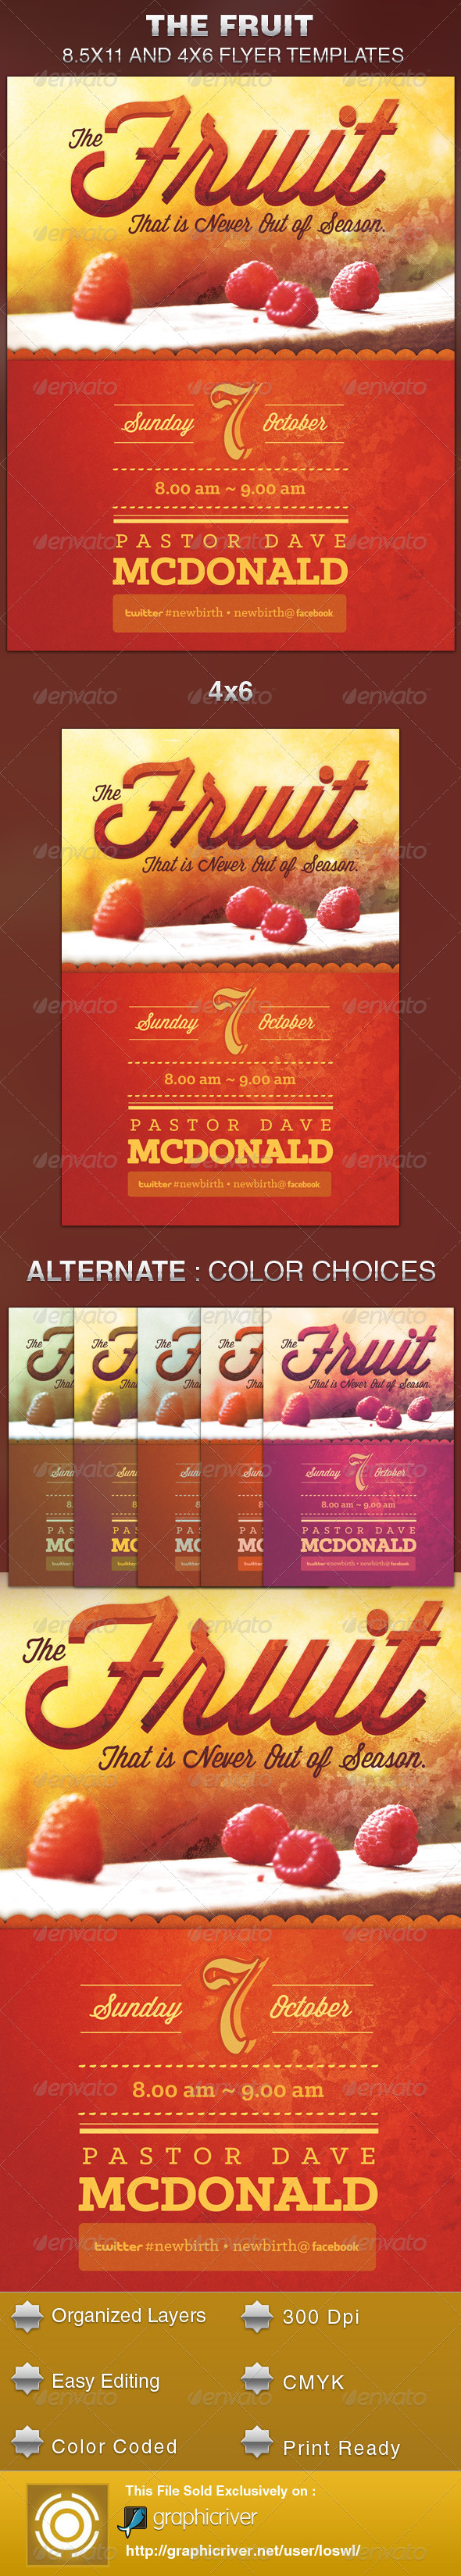 GraphicRiver Fruit that is Never out of Season Church Flyer 5683251